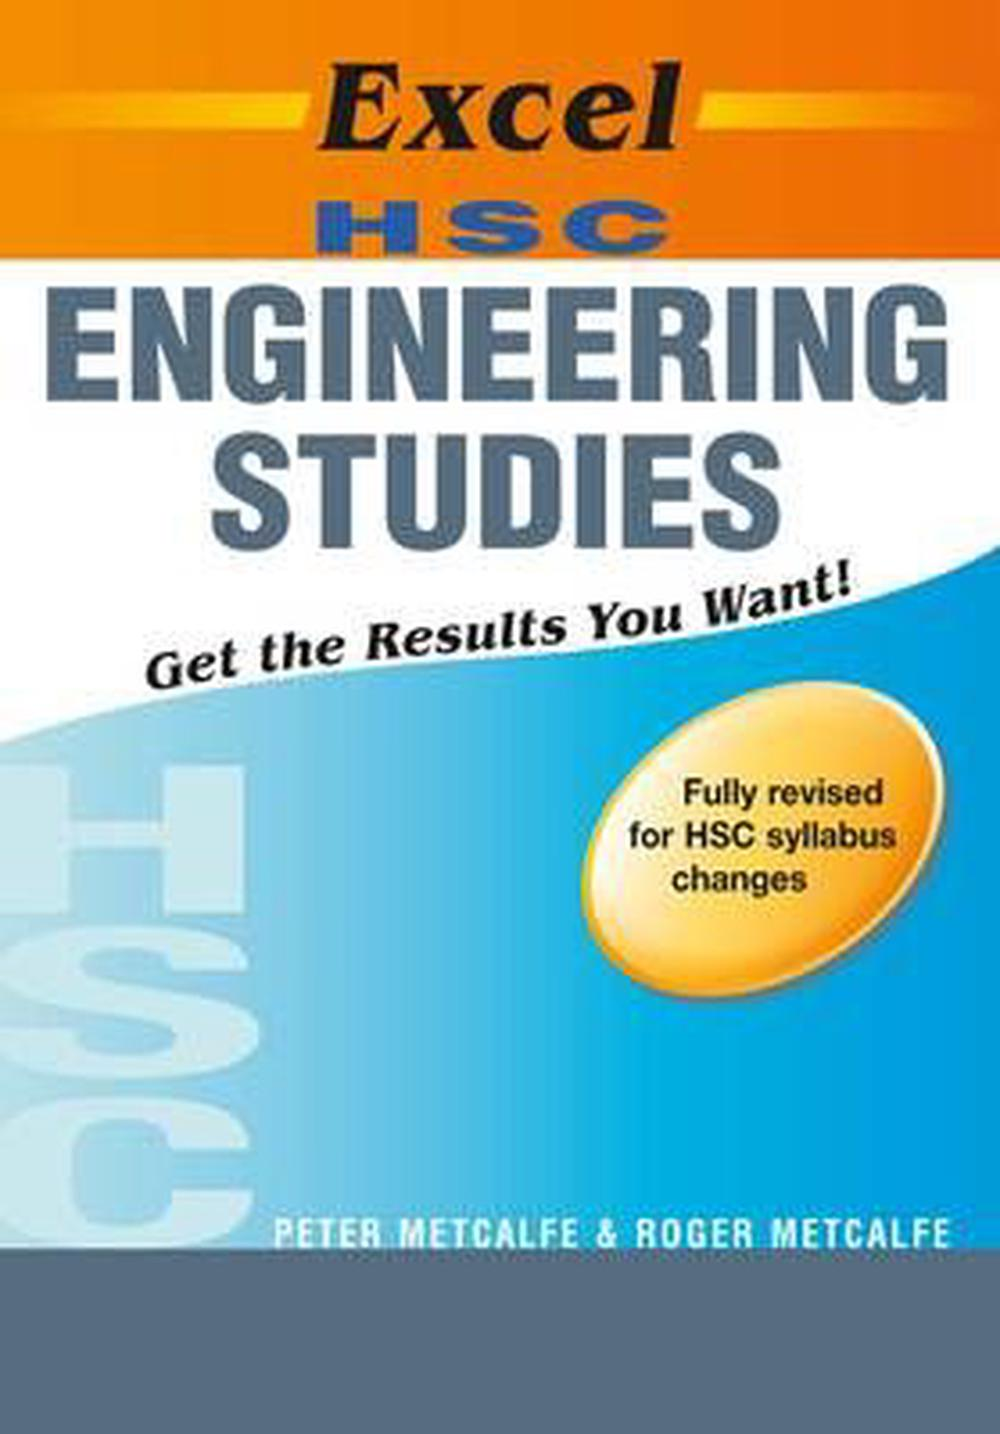 engineering studies hsc course The syllabus, assessment and reporting information, past hsc exam papers, and other support materials for the nsw engineering studies course.